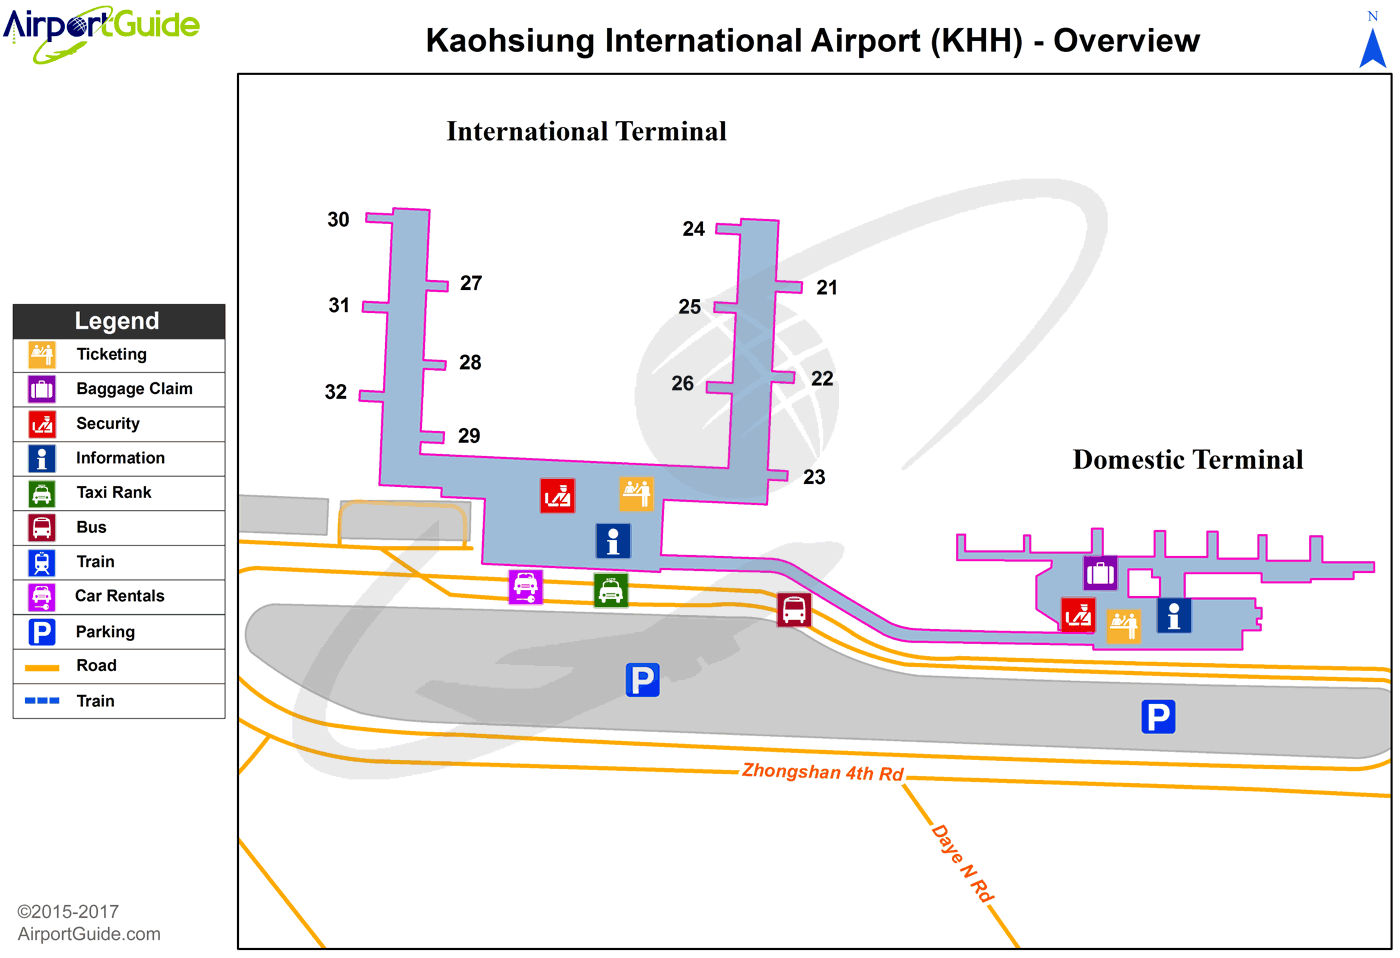 Kaohsiung City - Kaohsiung International (KHH) Airport Terminal Map - Overview